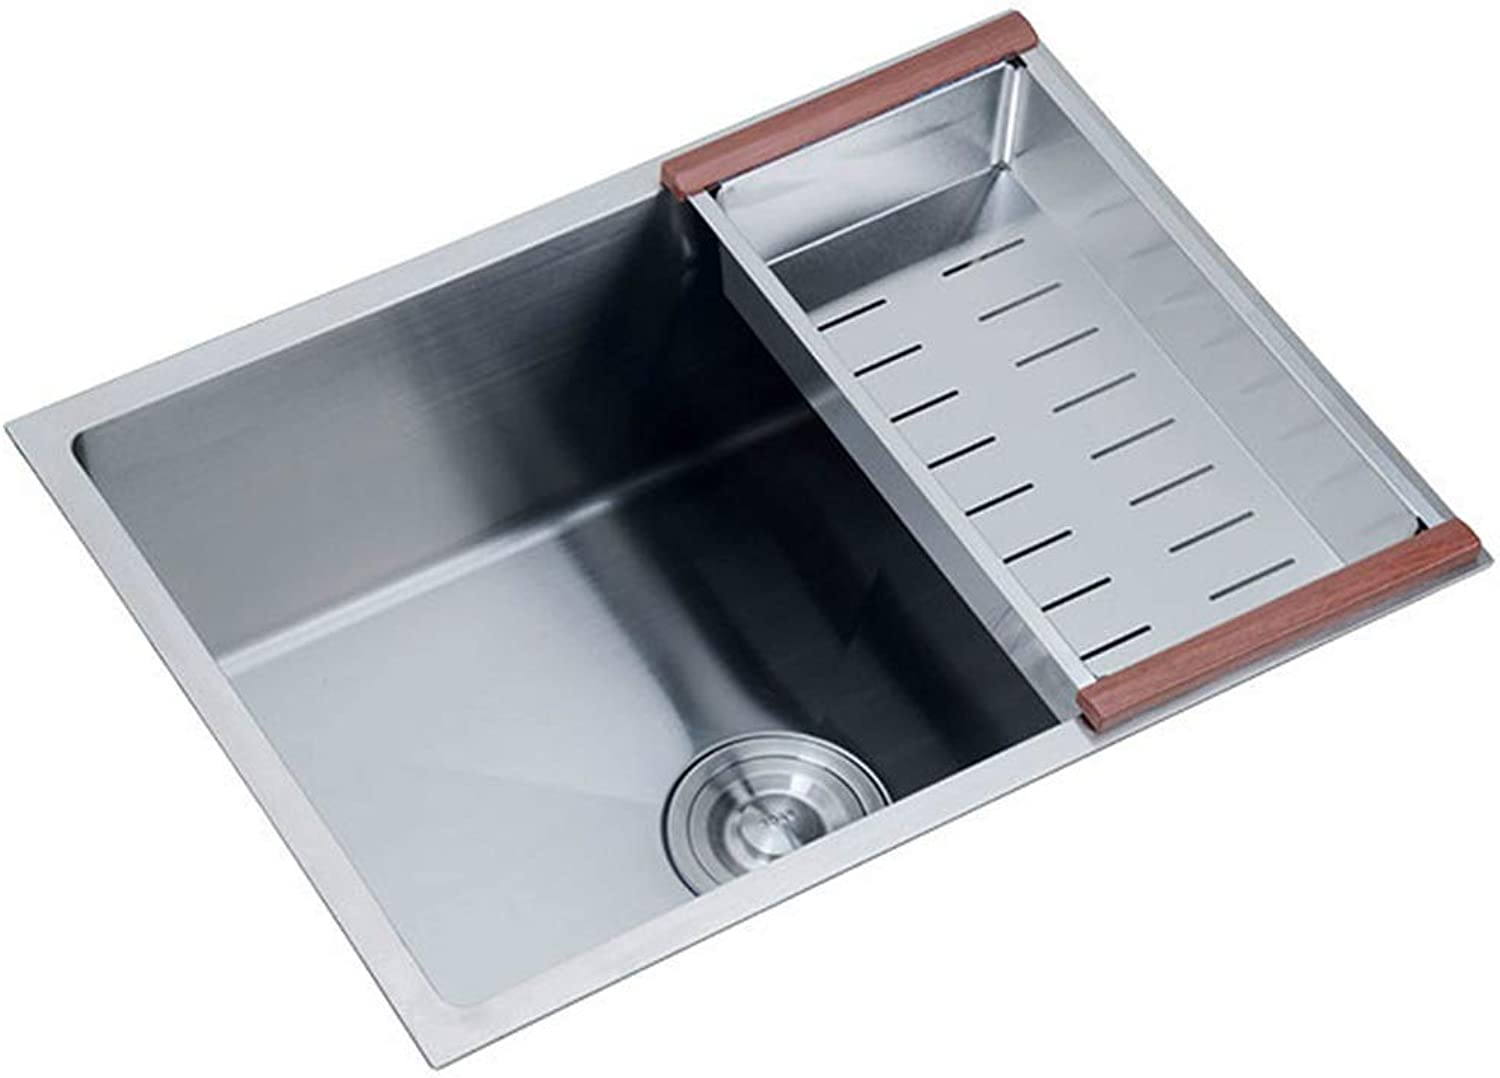 Bath Fixtures Kitchen Square Sink Small Sink Bathroom Mini Sink Kitchen Finishing Cleaning Pool Bathroom Stainless Steel Wash Basin Single Bowl (color   Silver, Size   55cm)